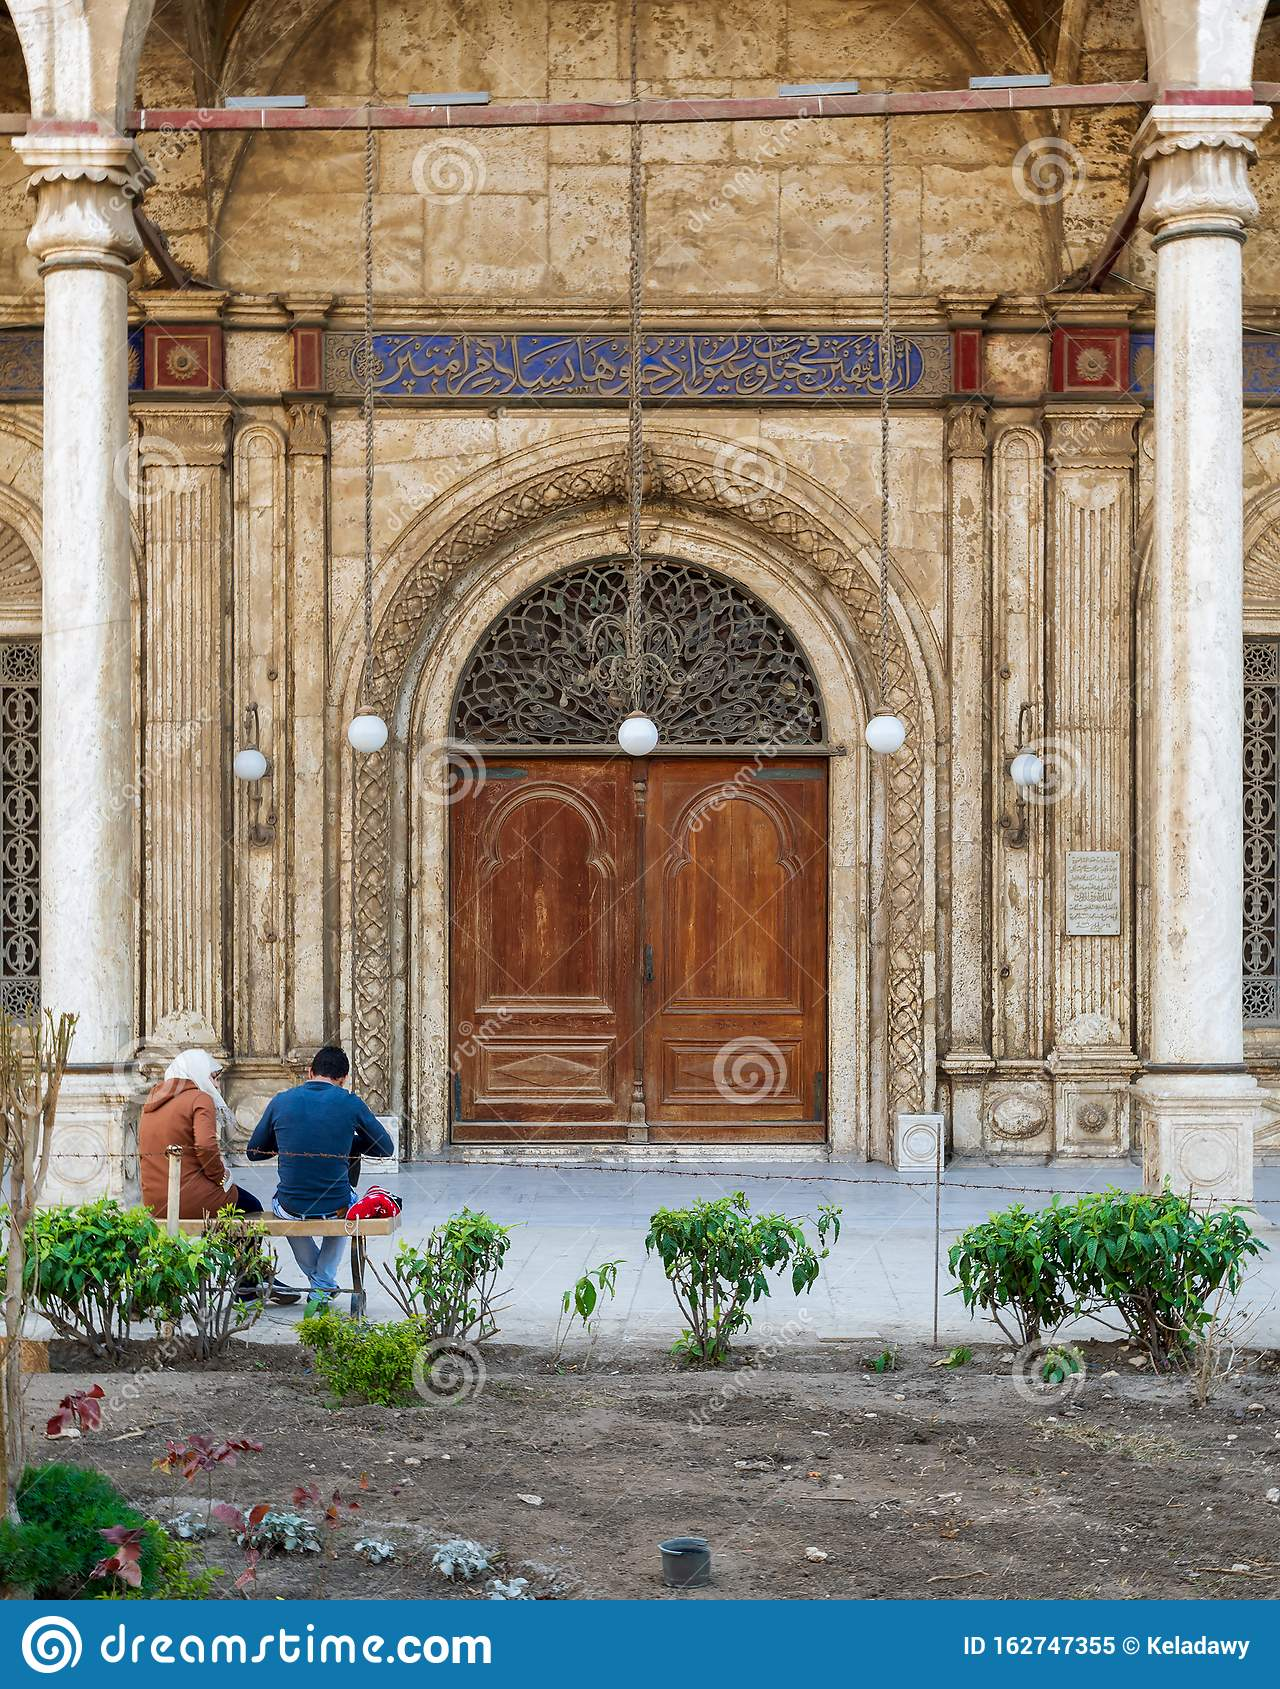 Wooden door and white marble decorated wall, side entrance of Muhammad Ali Mosque, Citadel of Cairo